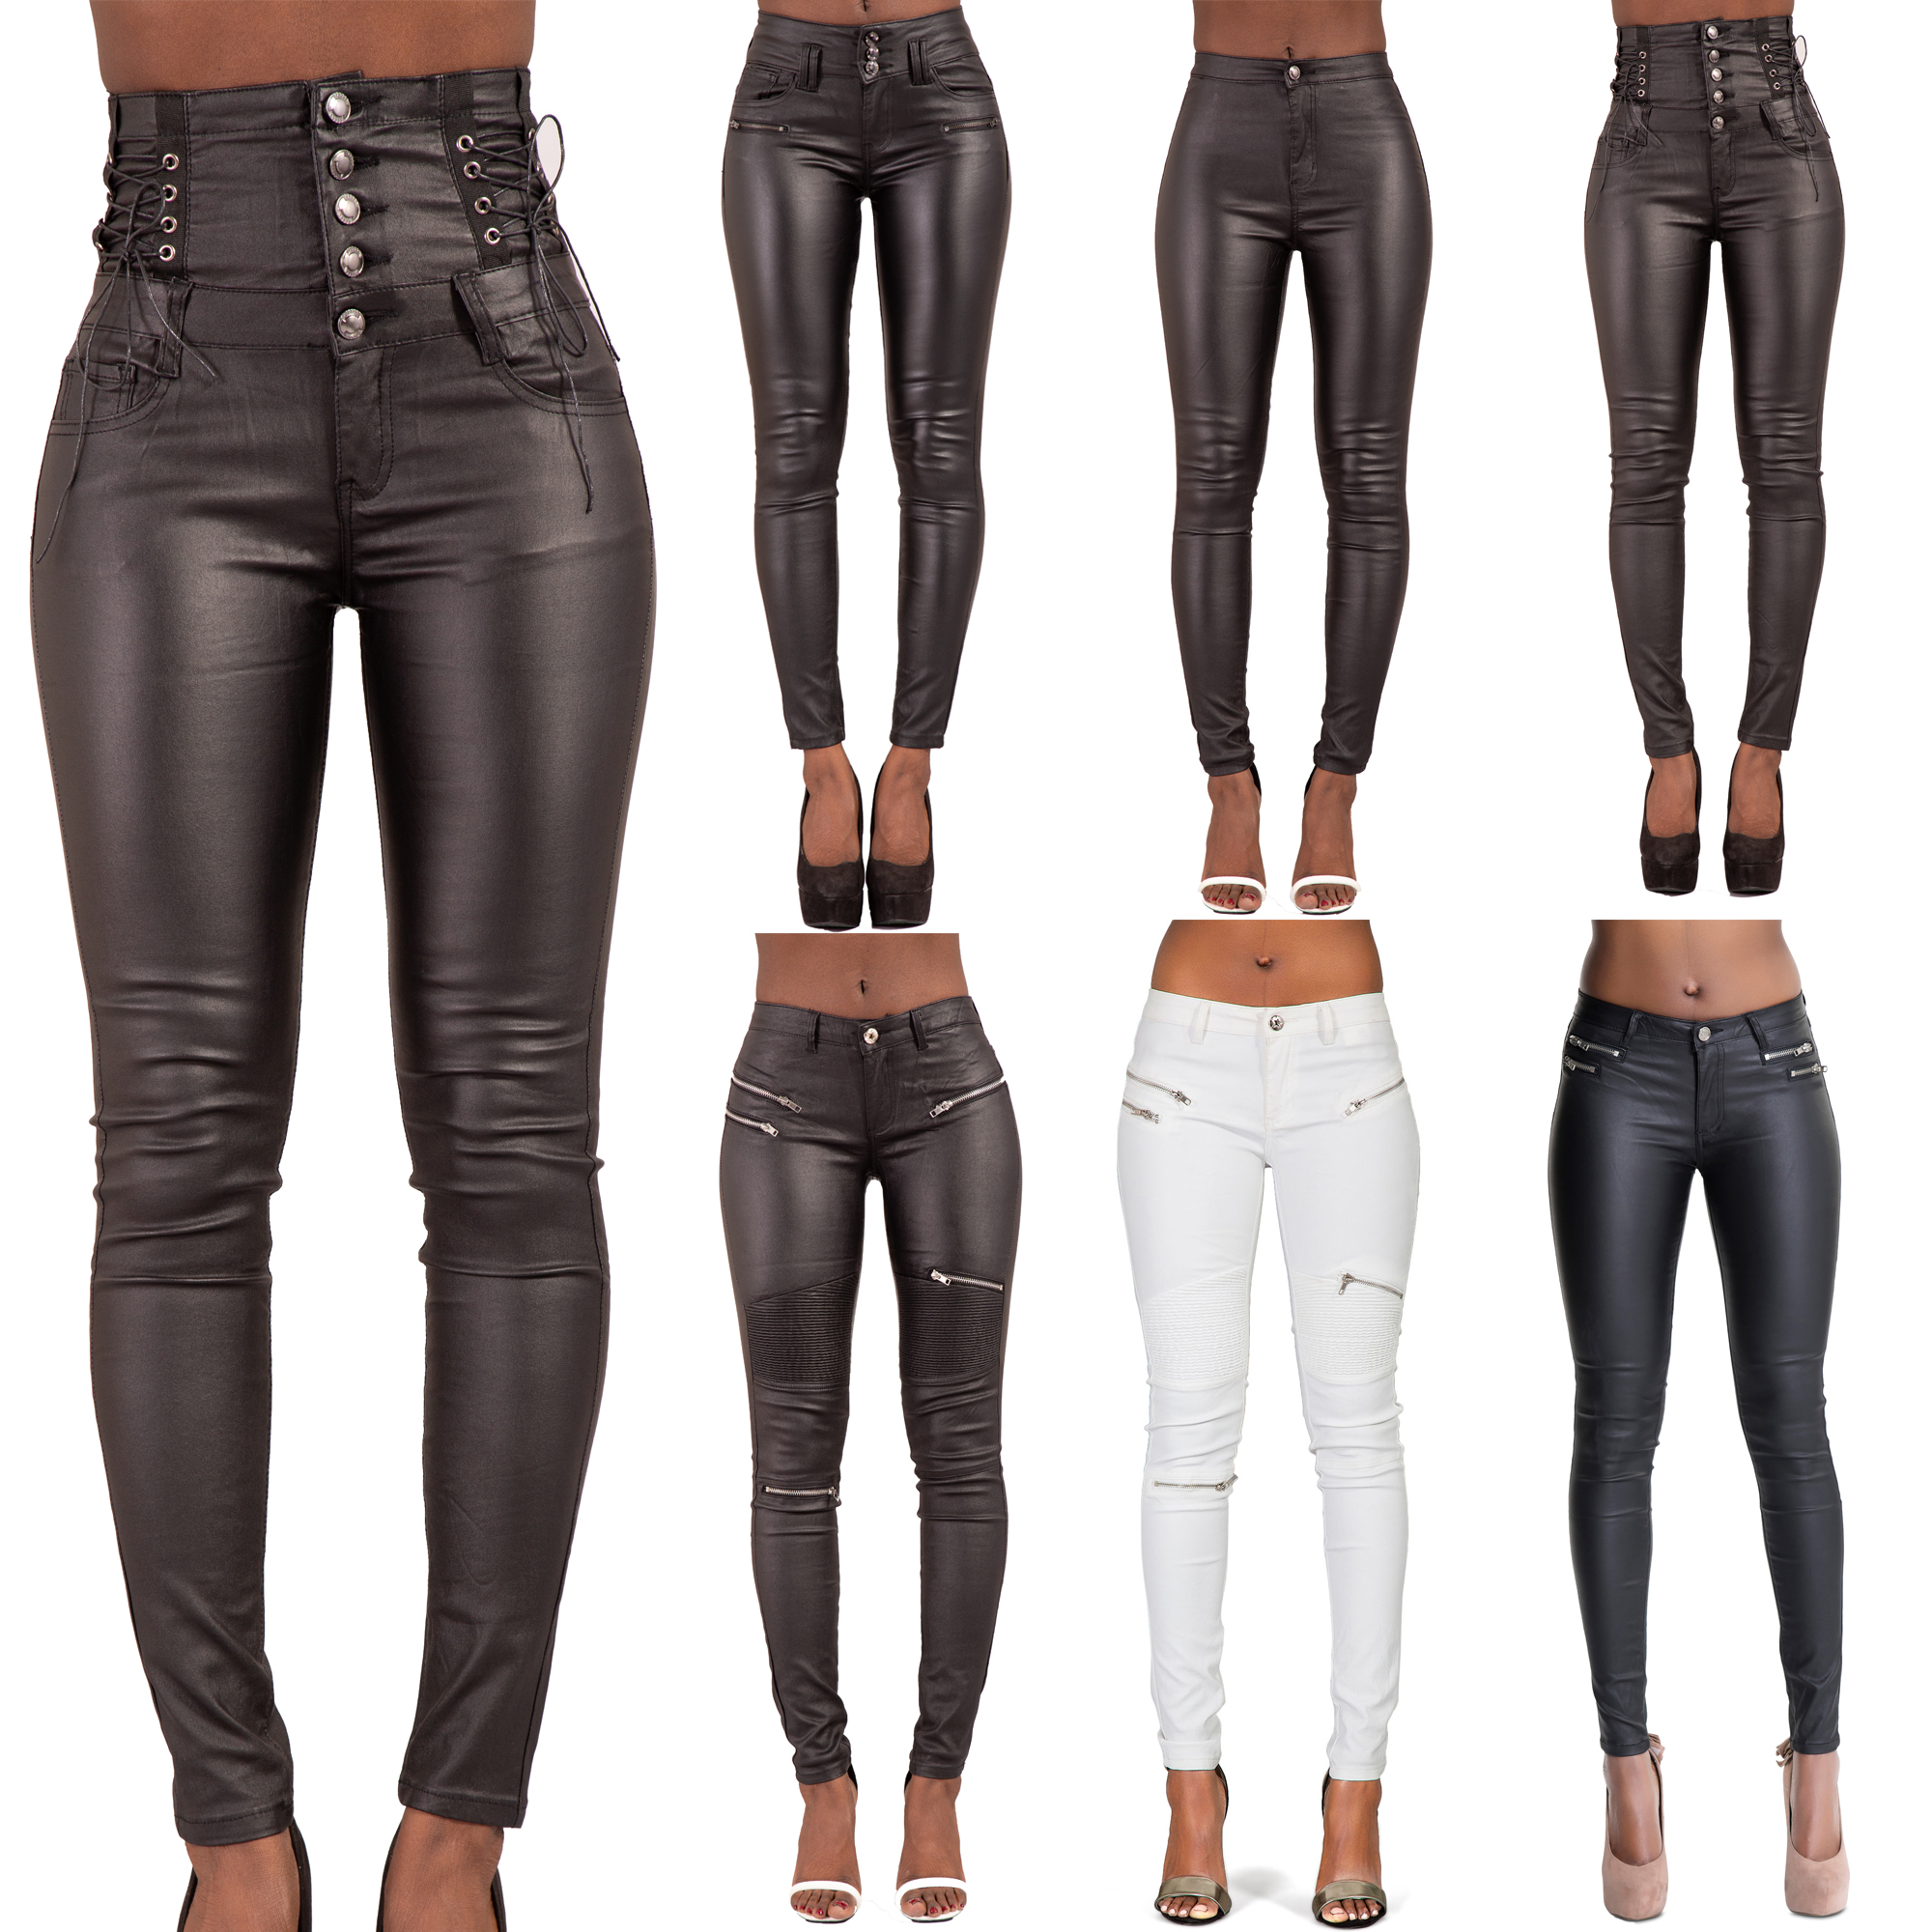 b5b59881534b WOMEN HIGH WAIST LEATHER LOOK TROUSERS LADIES WET LOOK JEANS SIZE 6 8 10 12  14